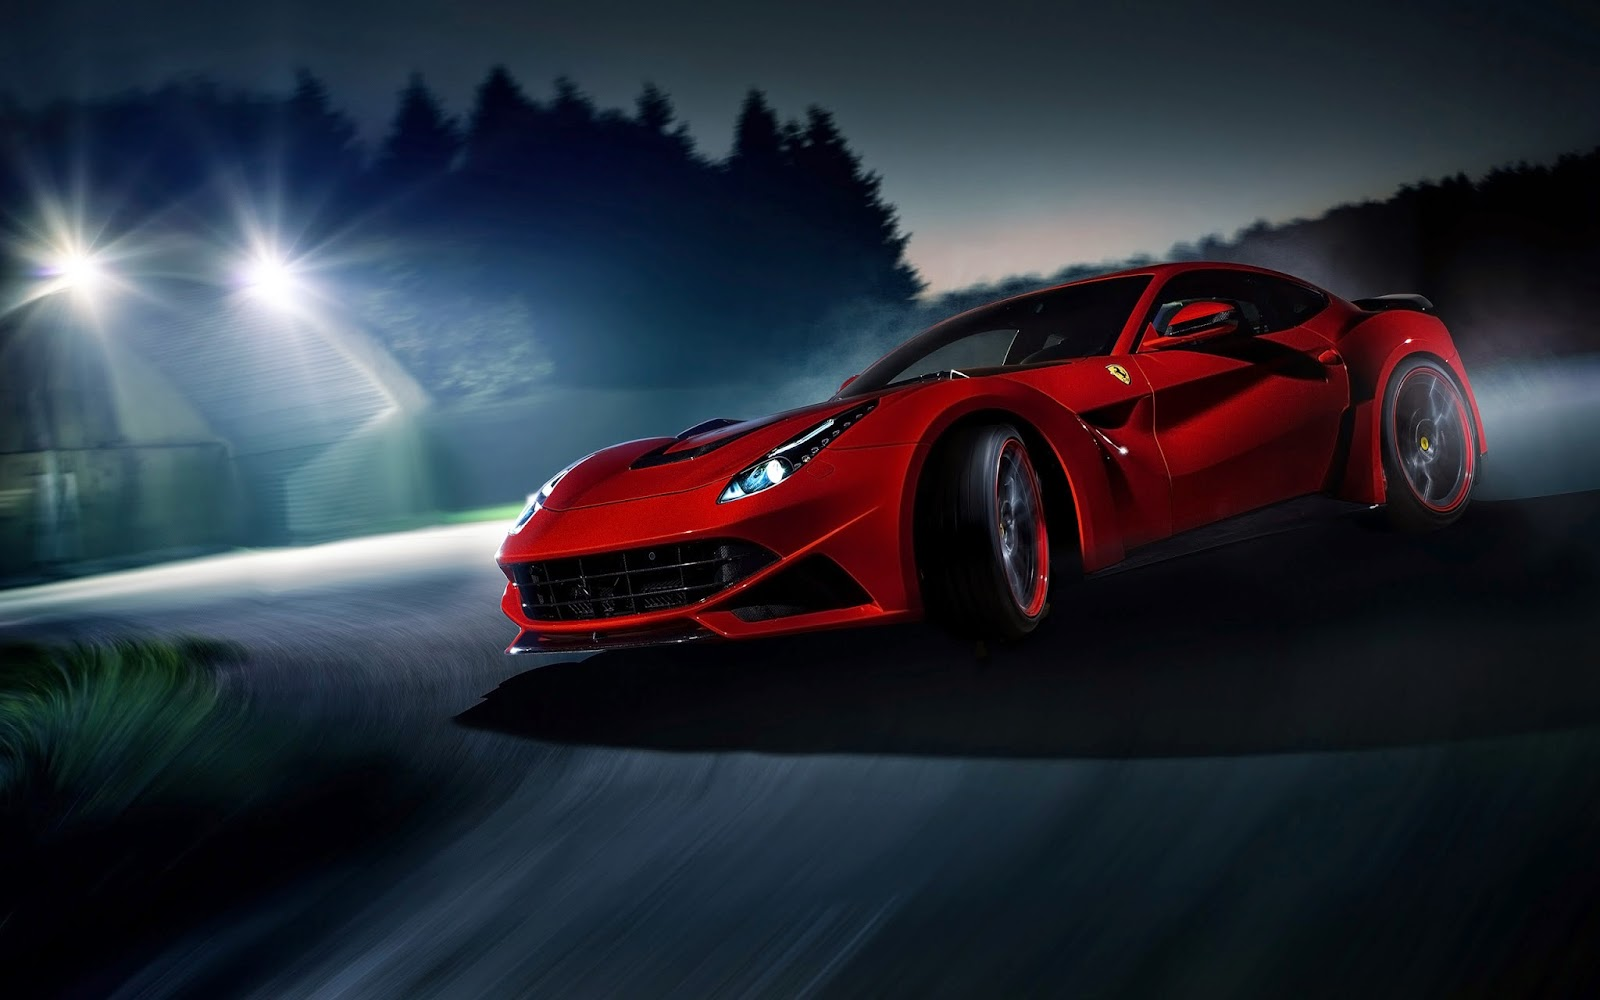 Wallpaper Mobil Sport Merah: Download Wallpaper Mobil Sport Gallery